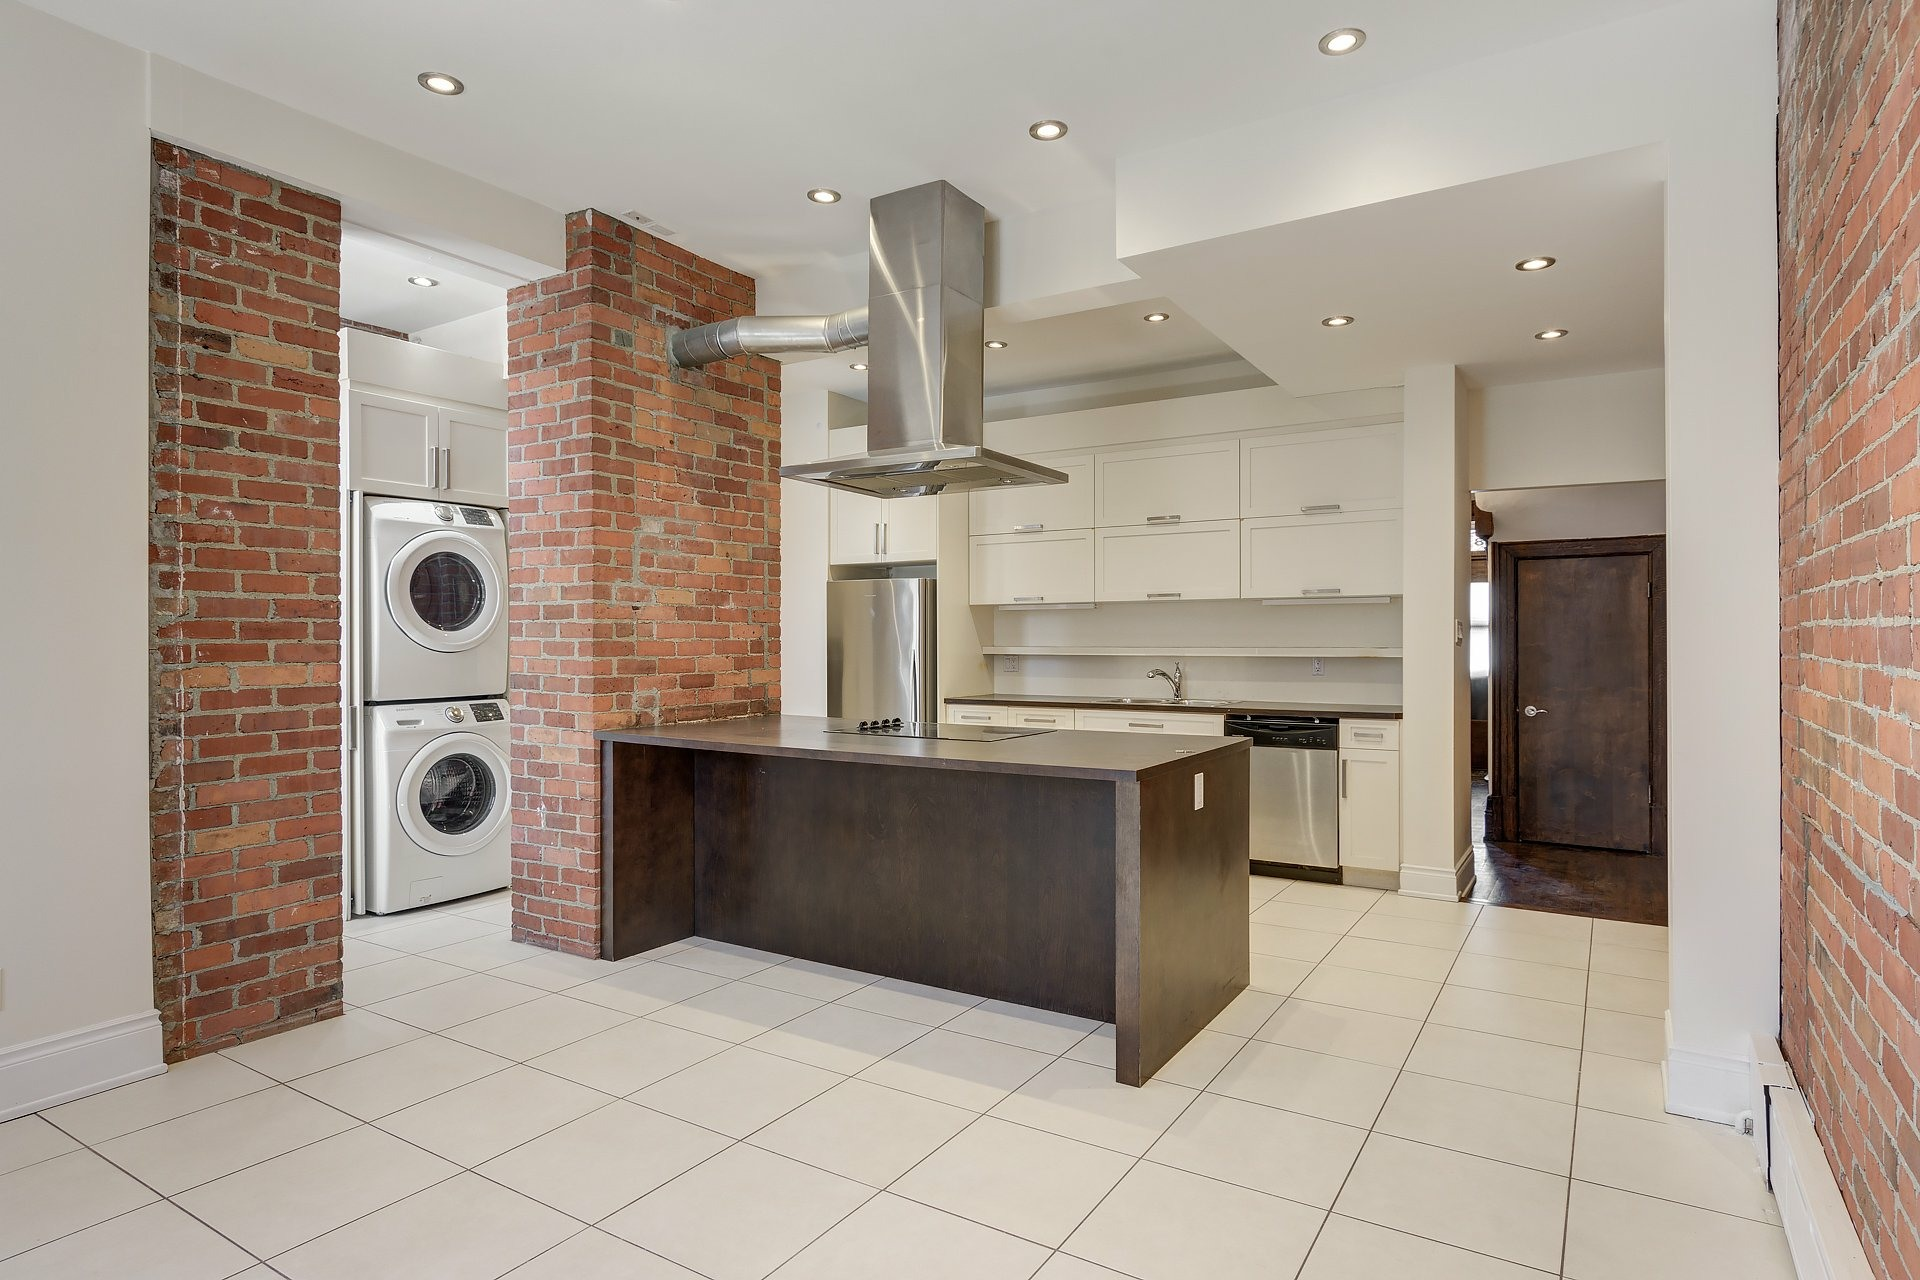 image 5 - House For rent Westmount - 9 rooms